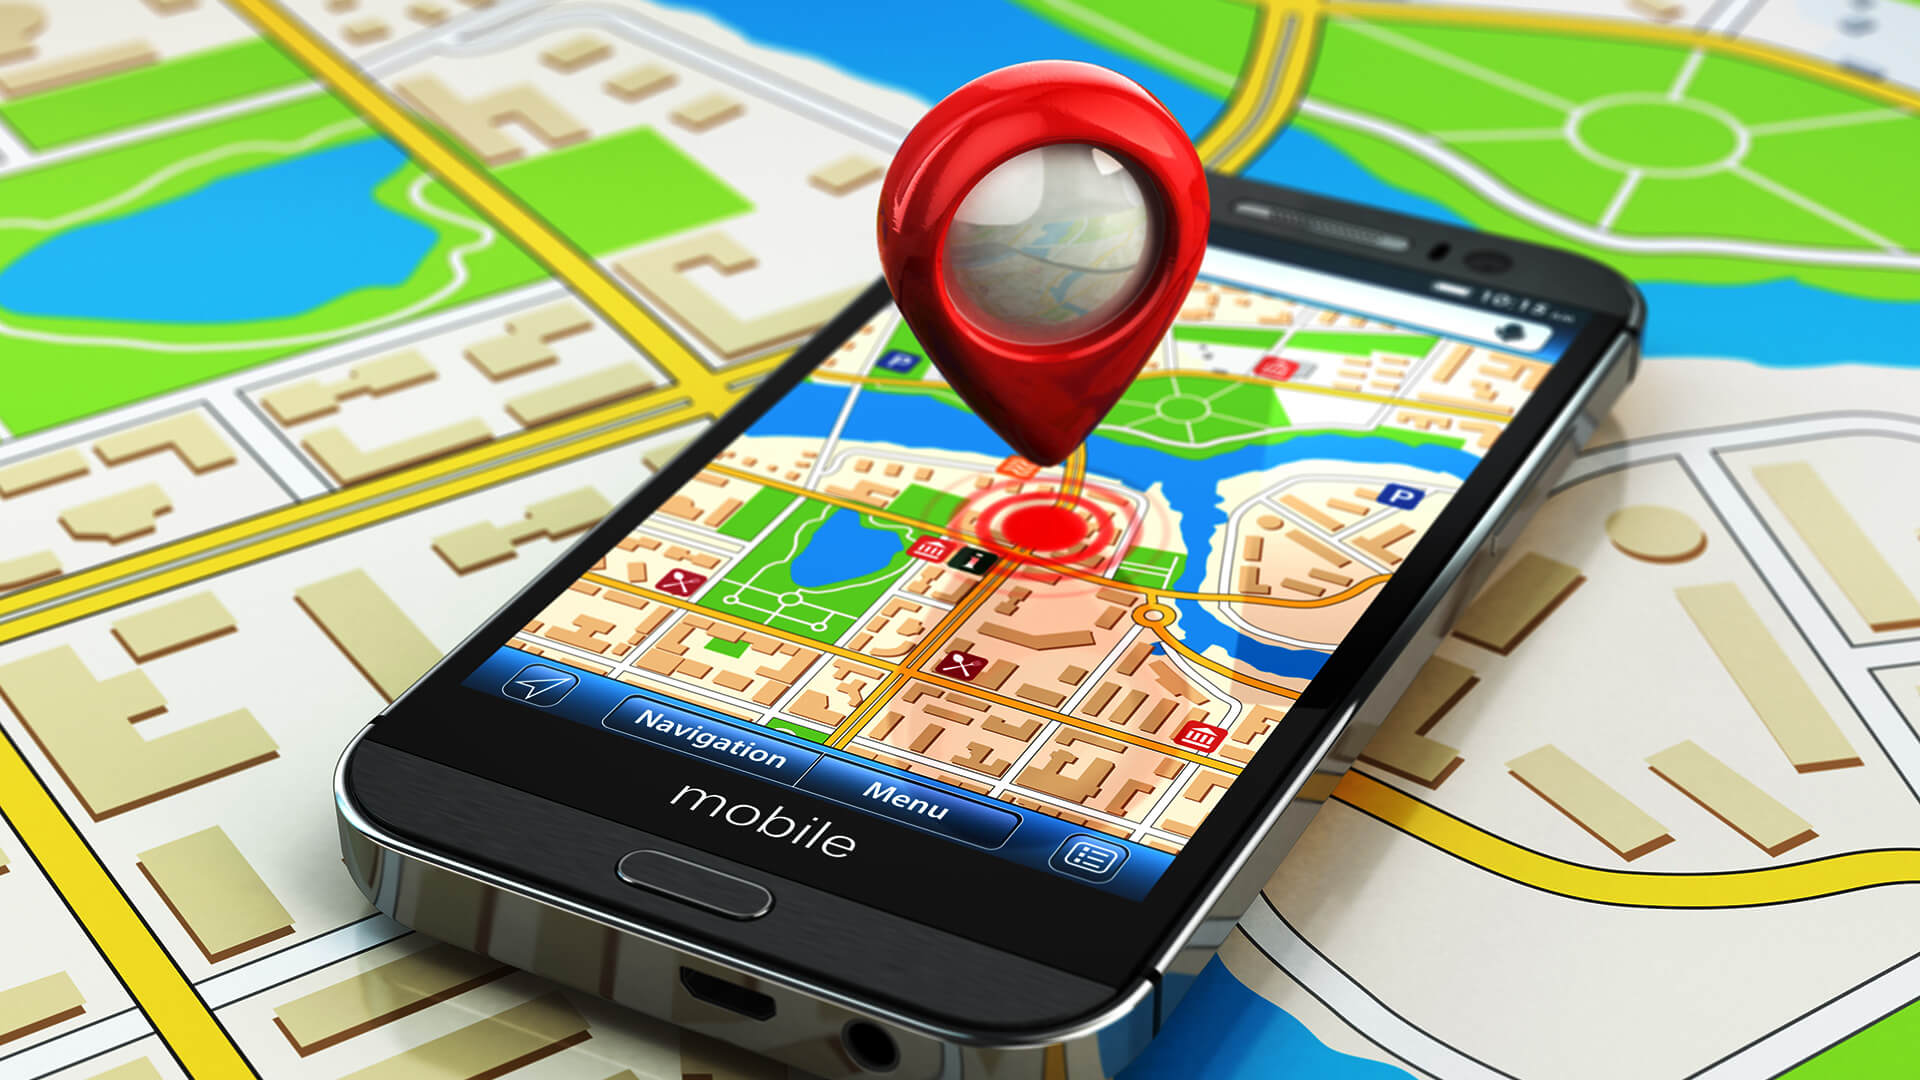 How To Track Phones When They Are Turned Off?